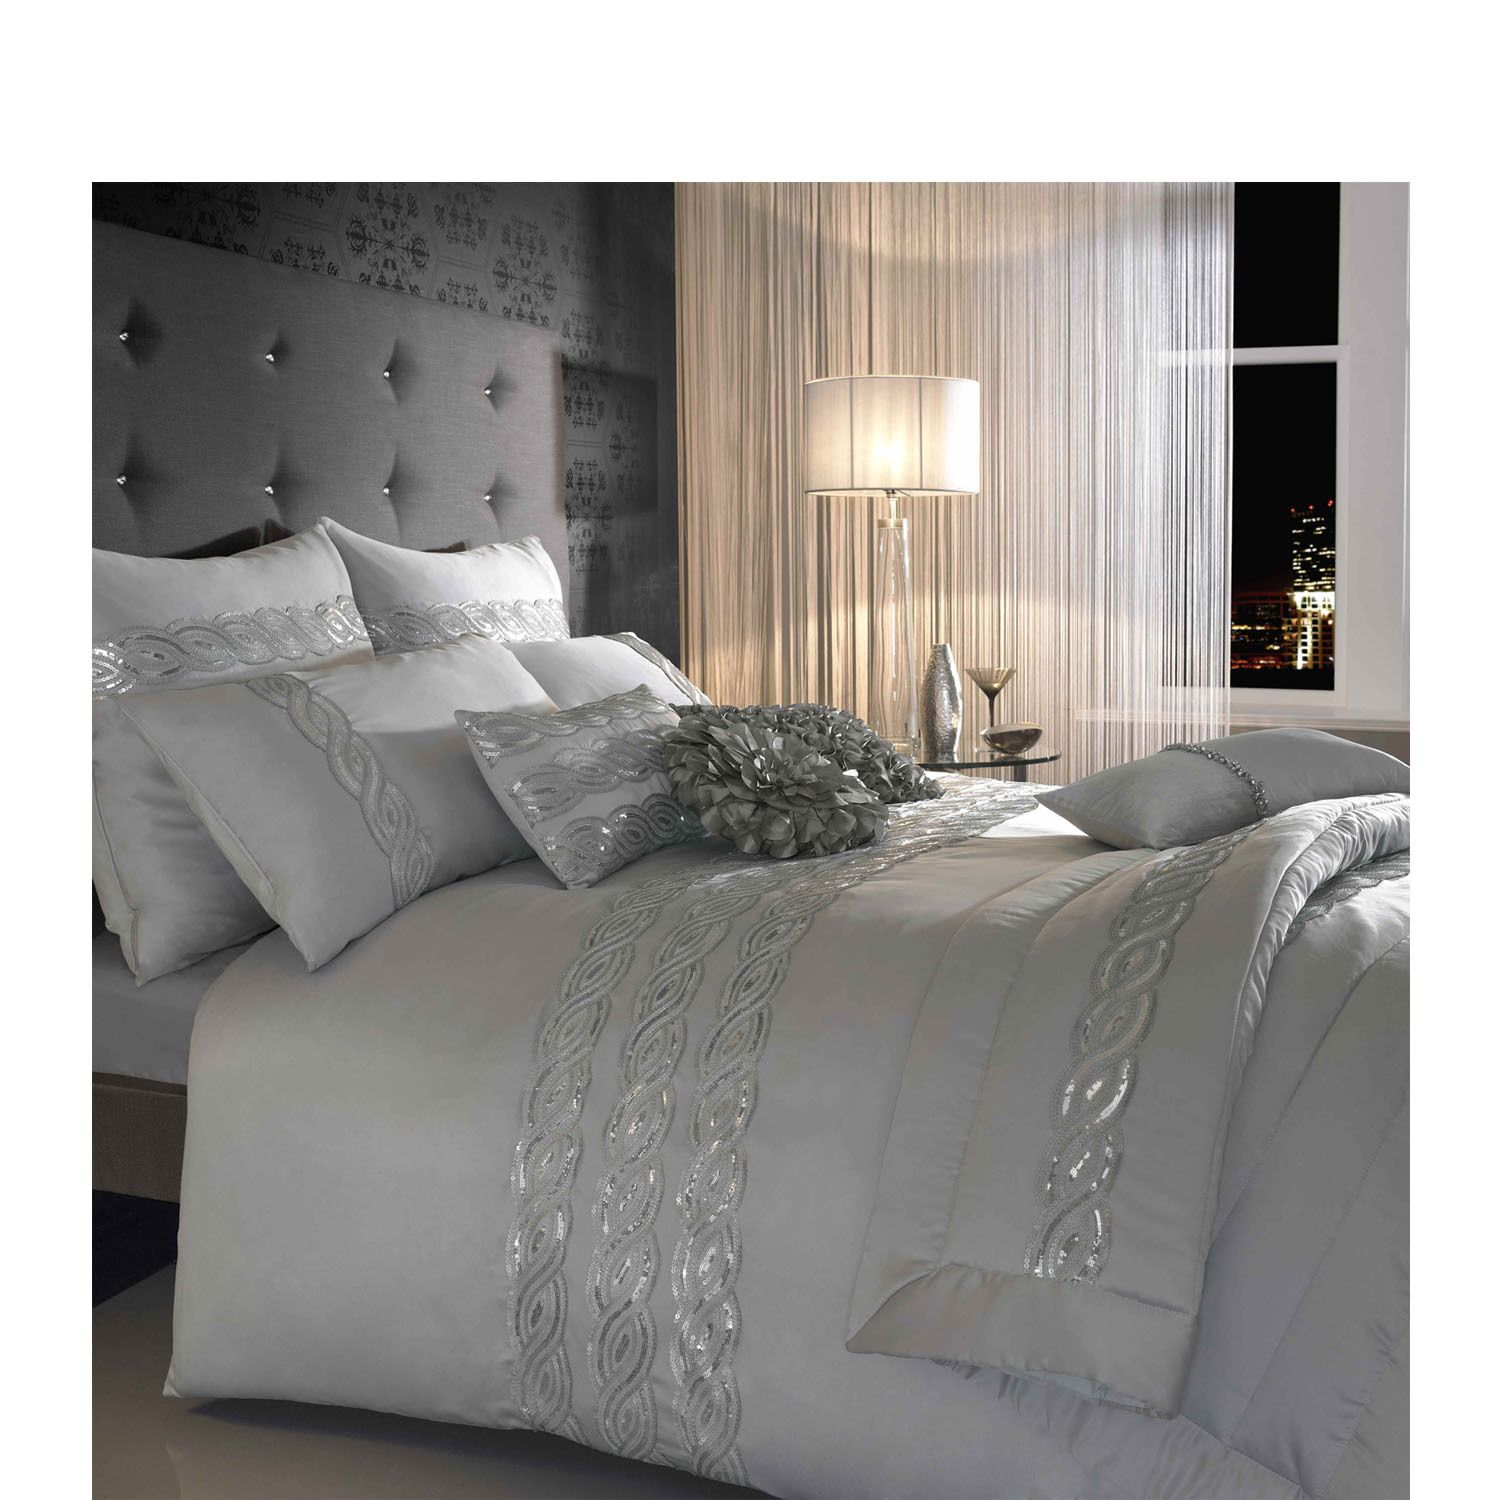 Bedroom 4 | When we win the lottery... | Pinterest | Kylie, Duvet ... : kylie quilt covers - Adamdwight.com